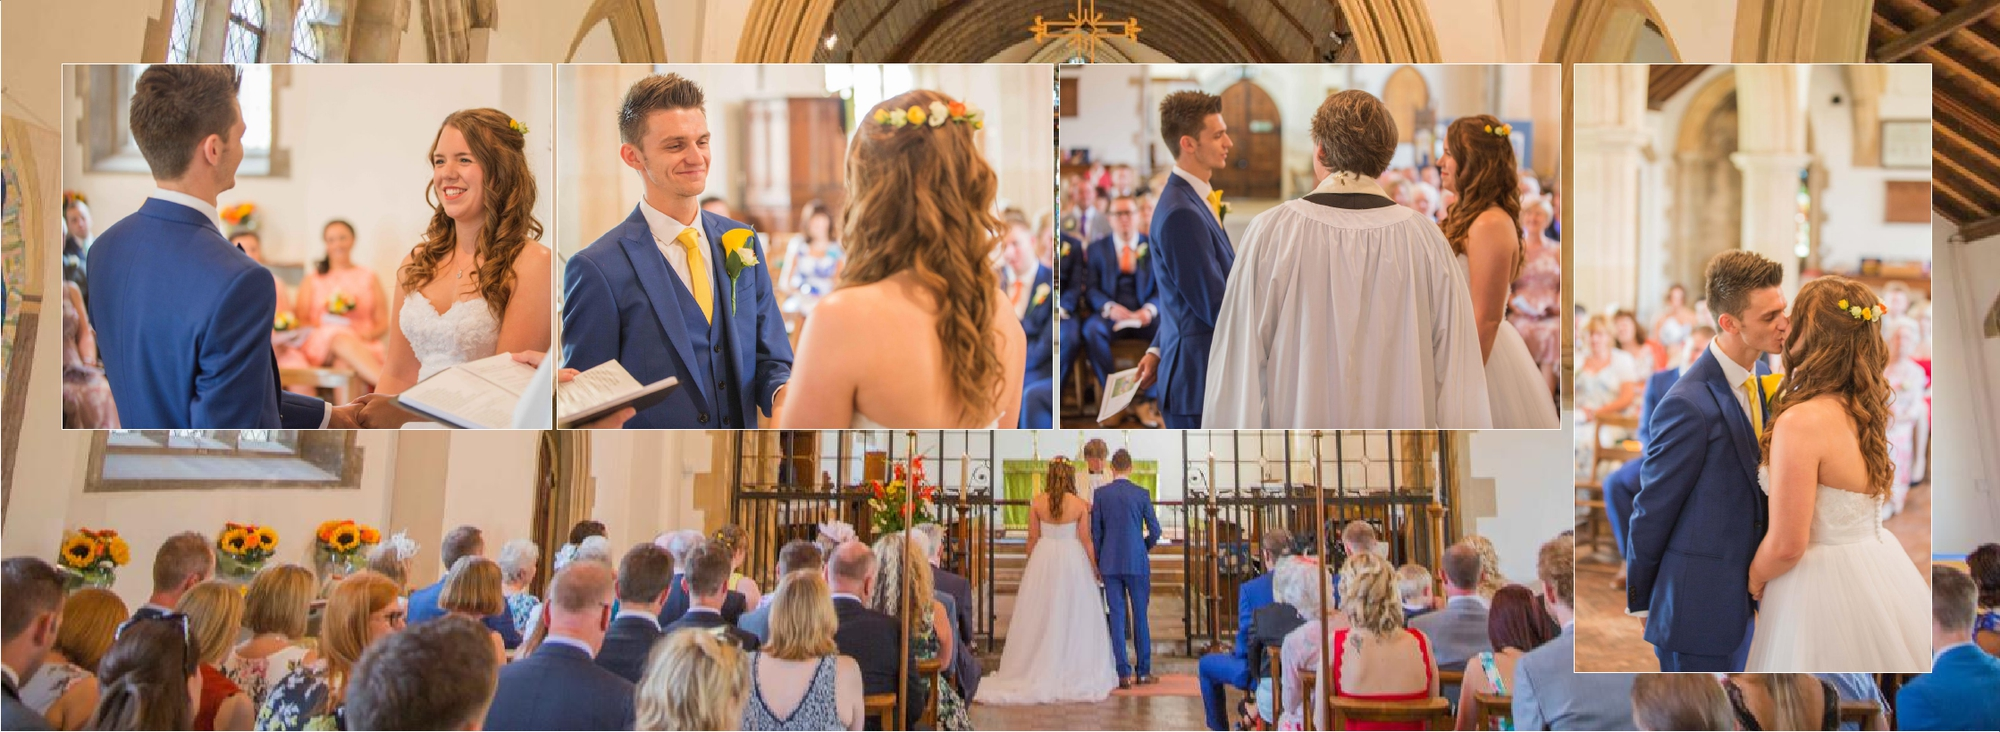 Church wedding photographer Southampton Kimberley Garrod